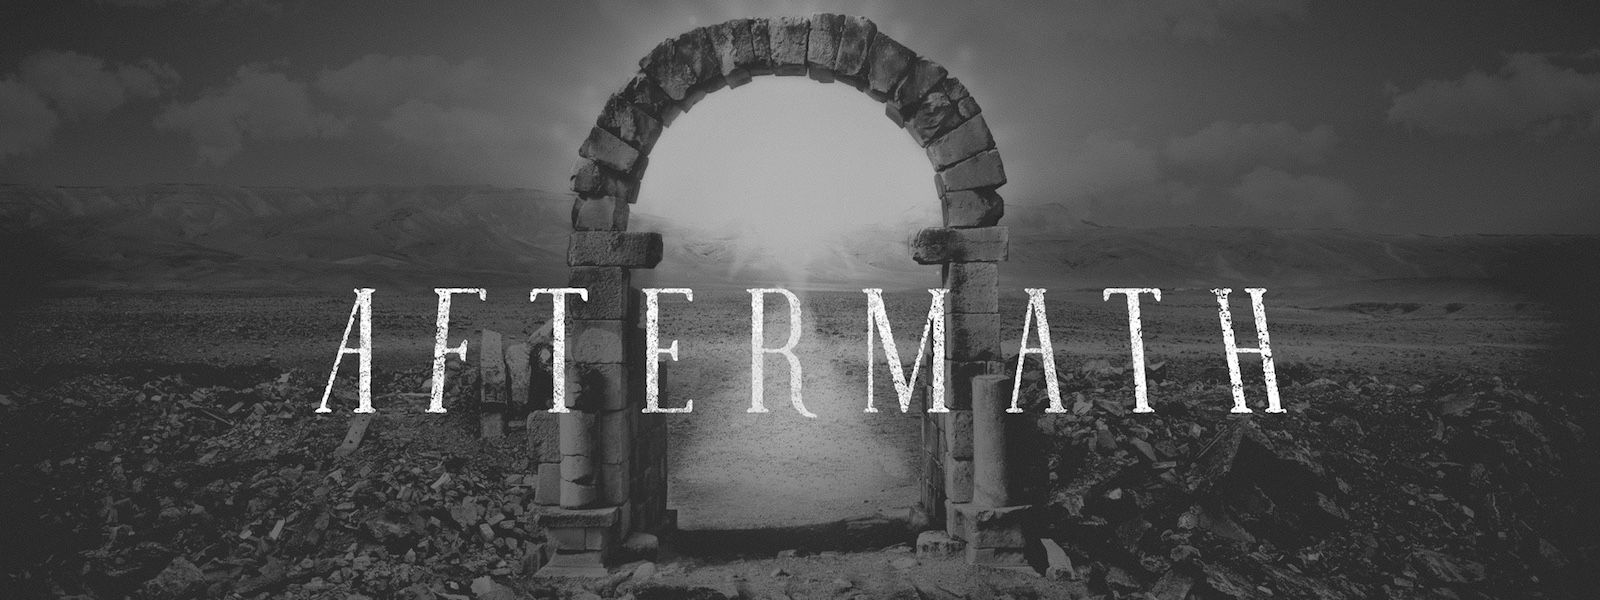 Aftermath Streaming rightnow media :: streaming video bible study : aftermath